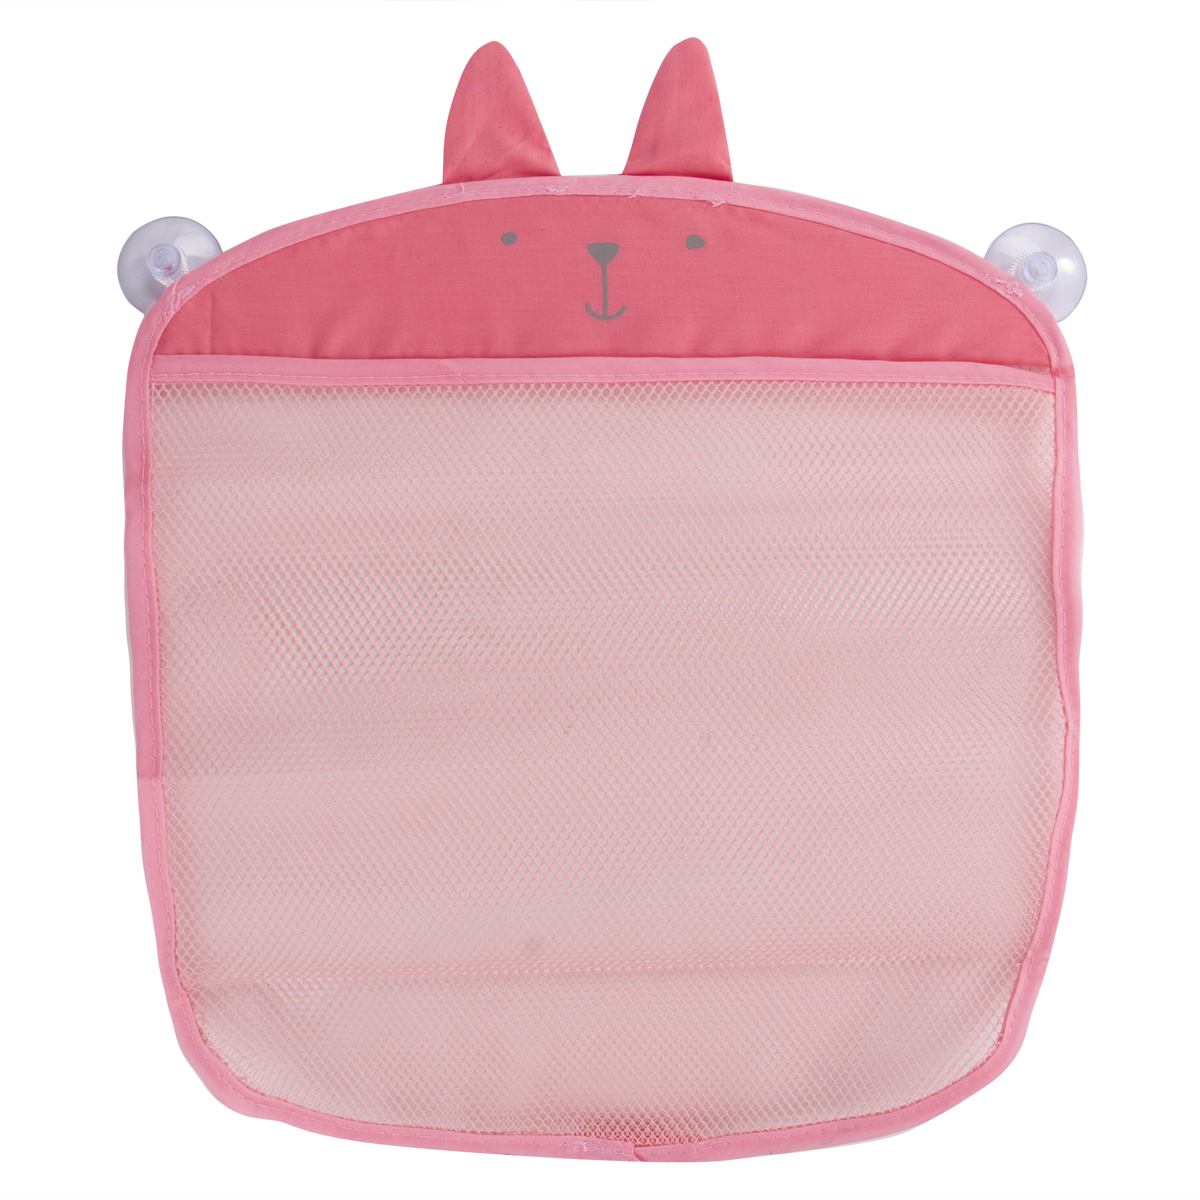 Cartoon Bathroom Hanging Storage Bag Baby Kids Bathing Toy Storage Organizer Kitchen Folding Mesh Bag 35*39cm